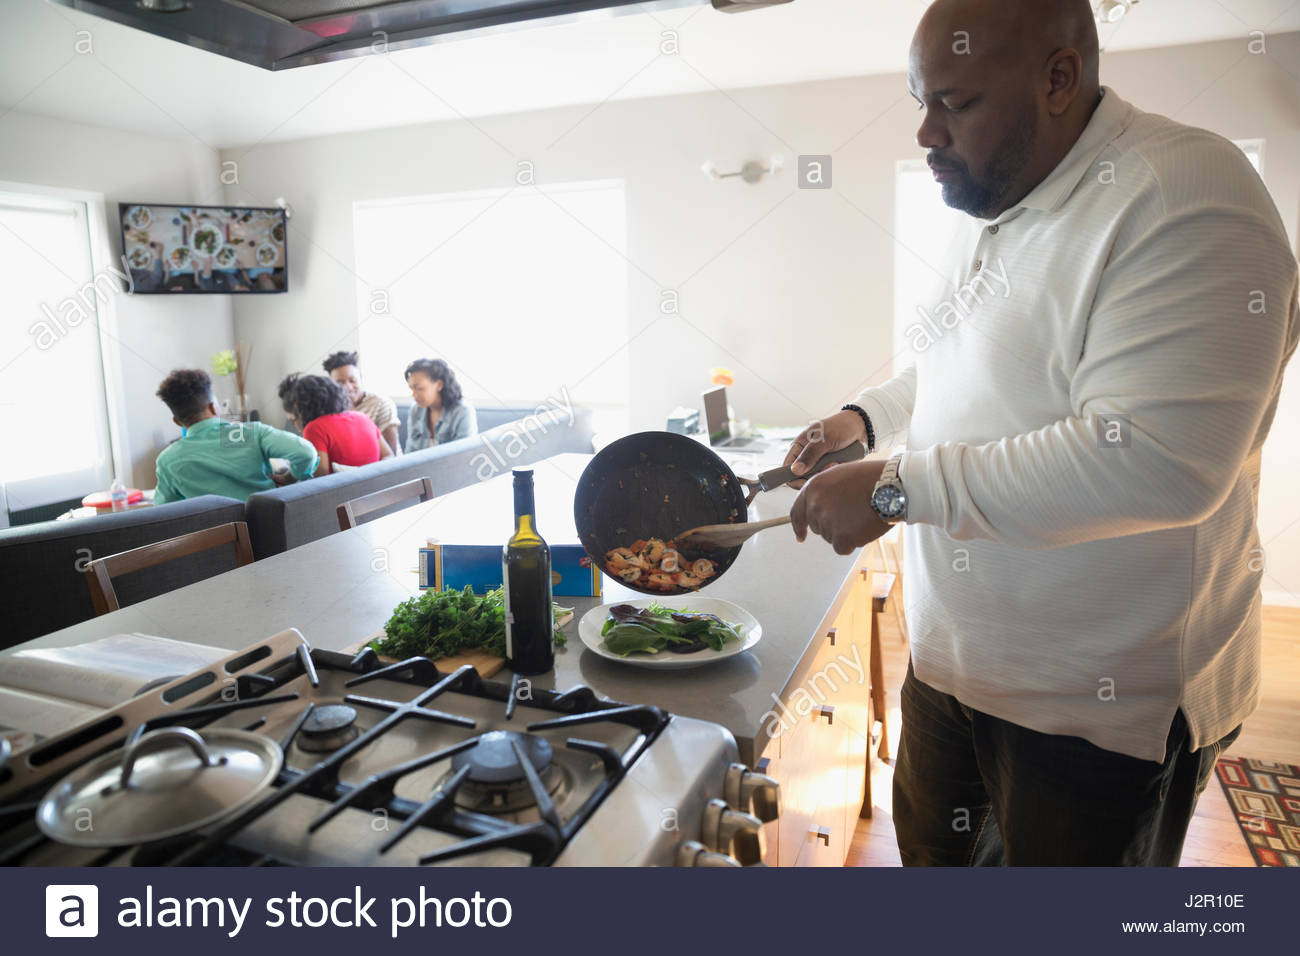 African American man cooking in kitchen with family watching TV - Stock Image